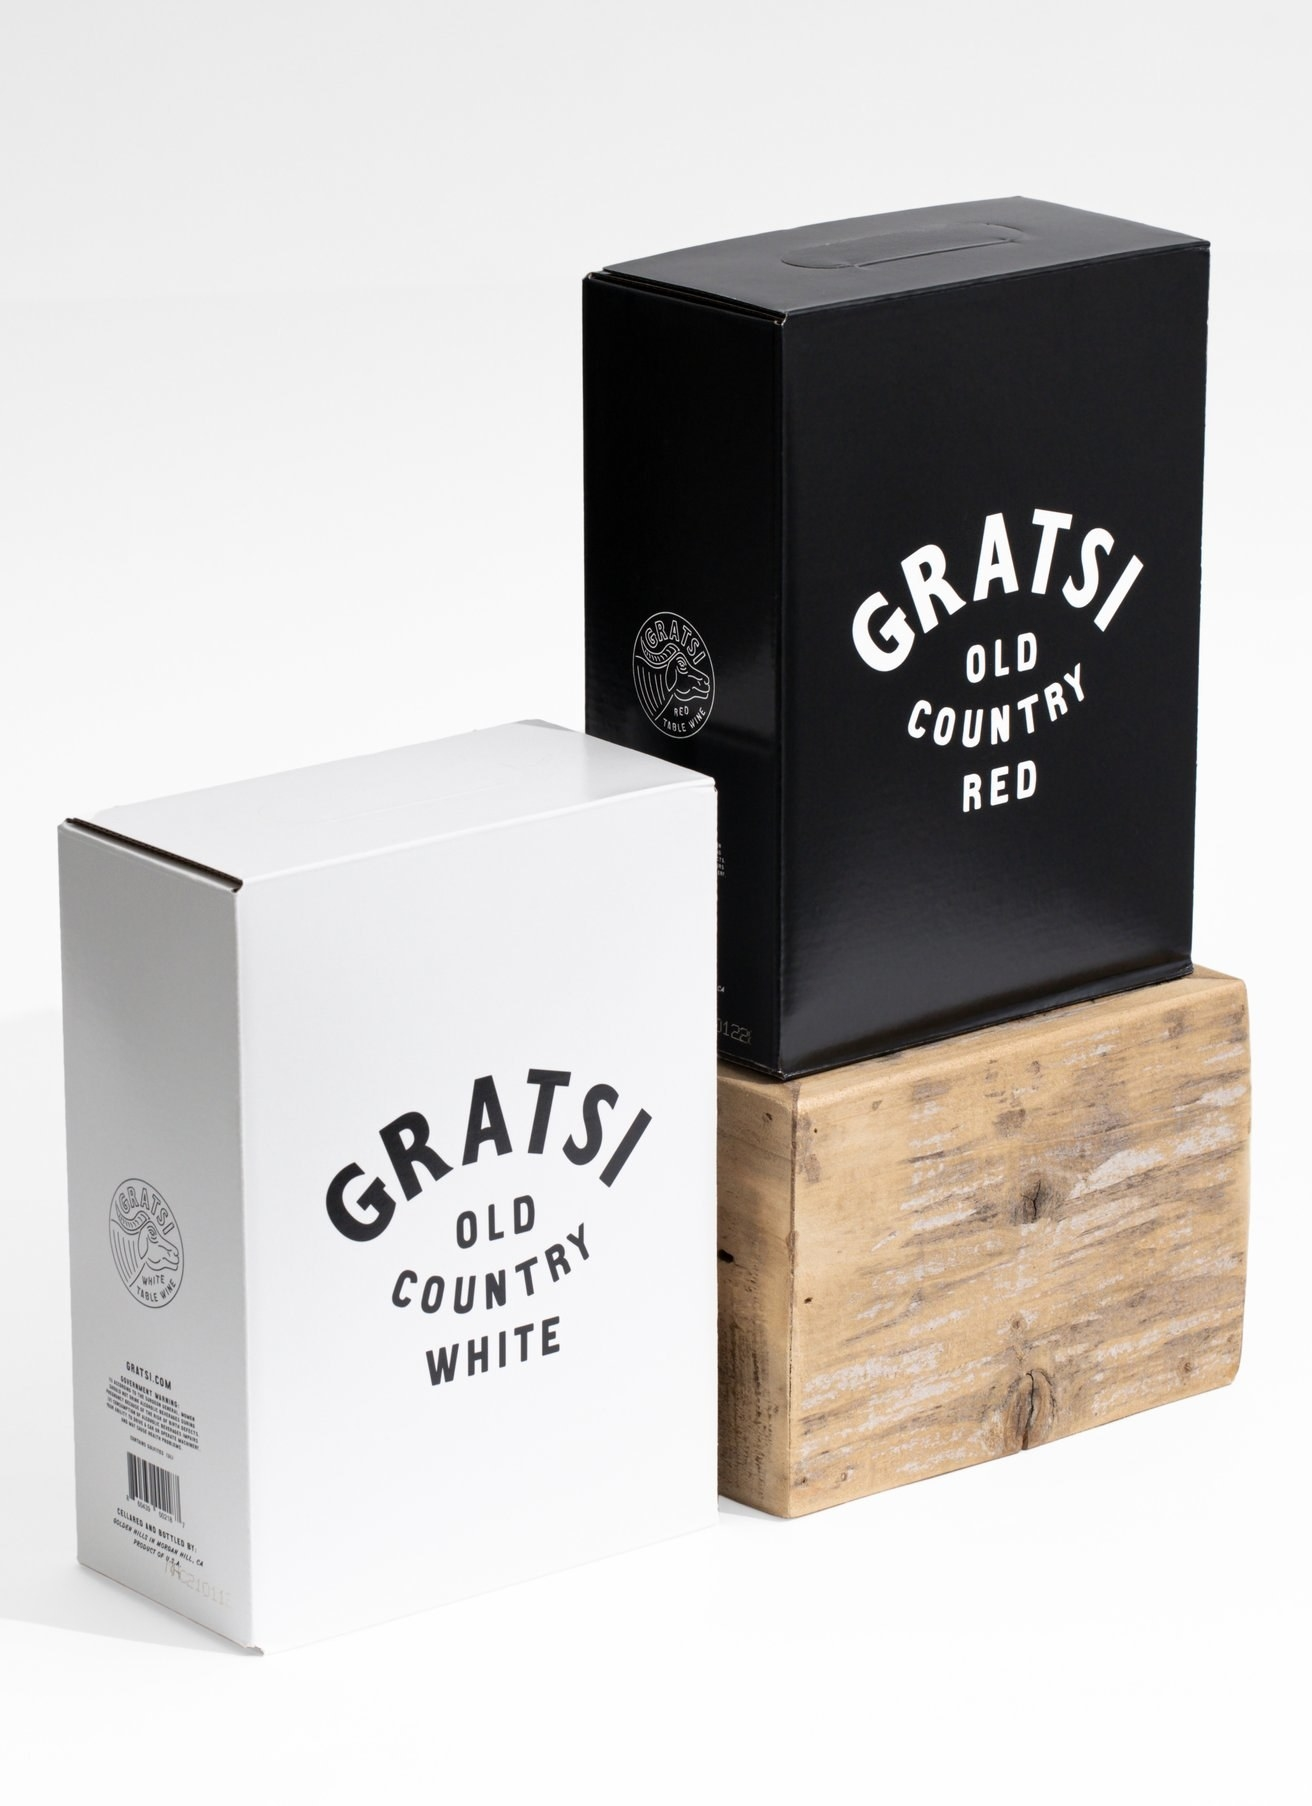 a box of the red and a box of the white Gratsi old country wines